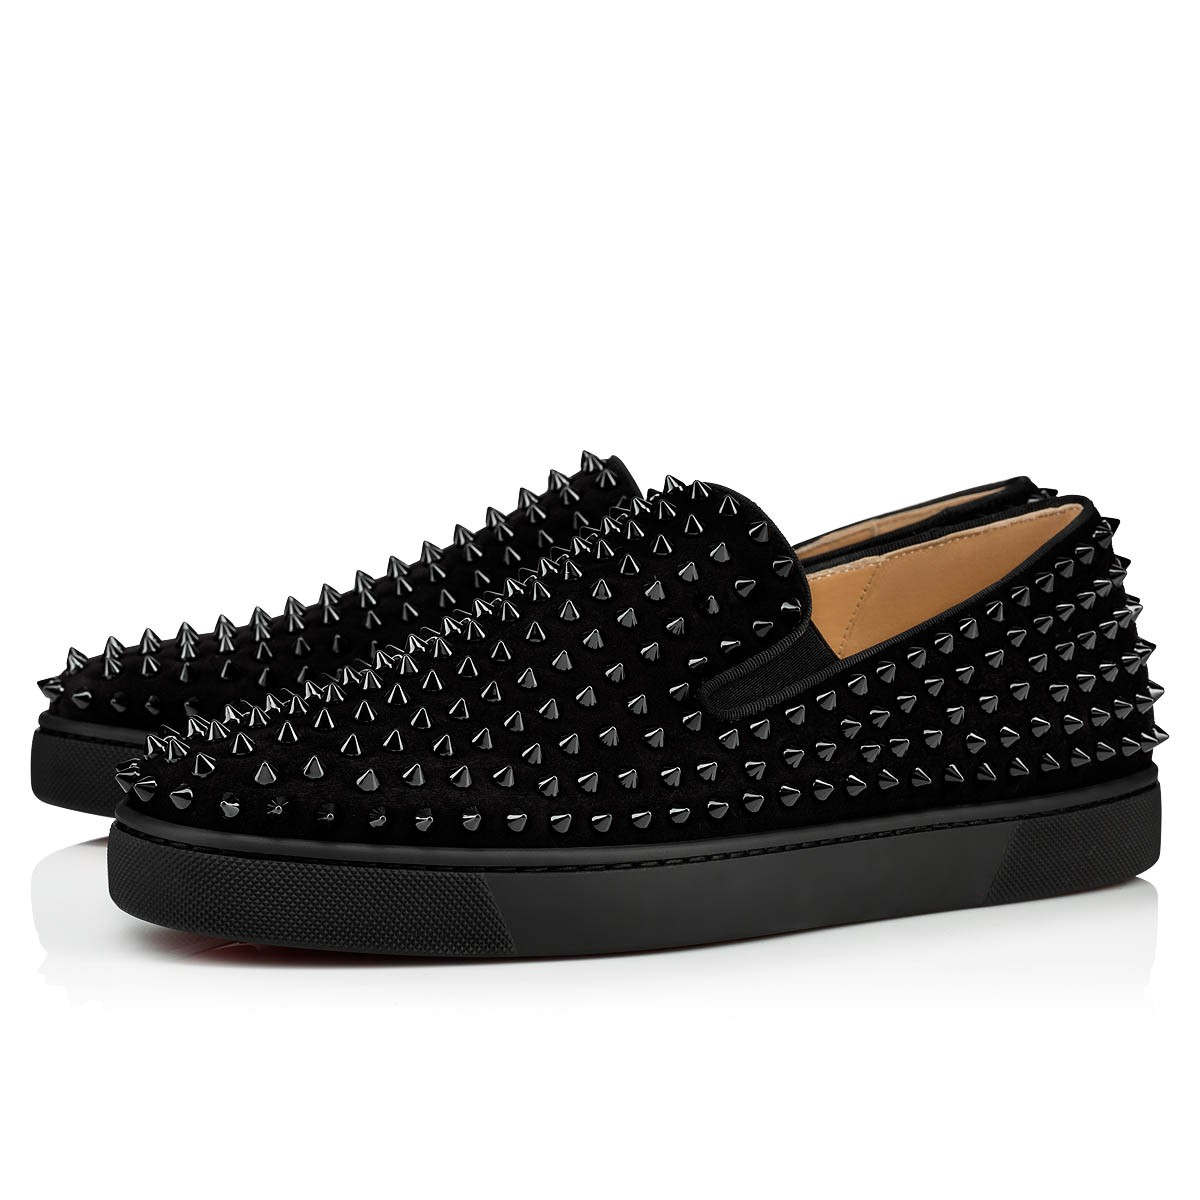 7a9f17ba00e Roller-Boat Black/Black/Bk Suede - Men Shoes - Christian Louboutin